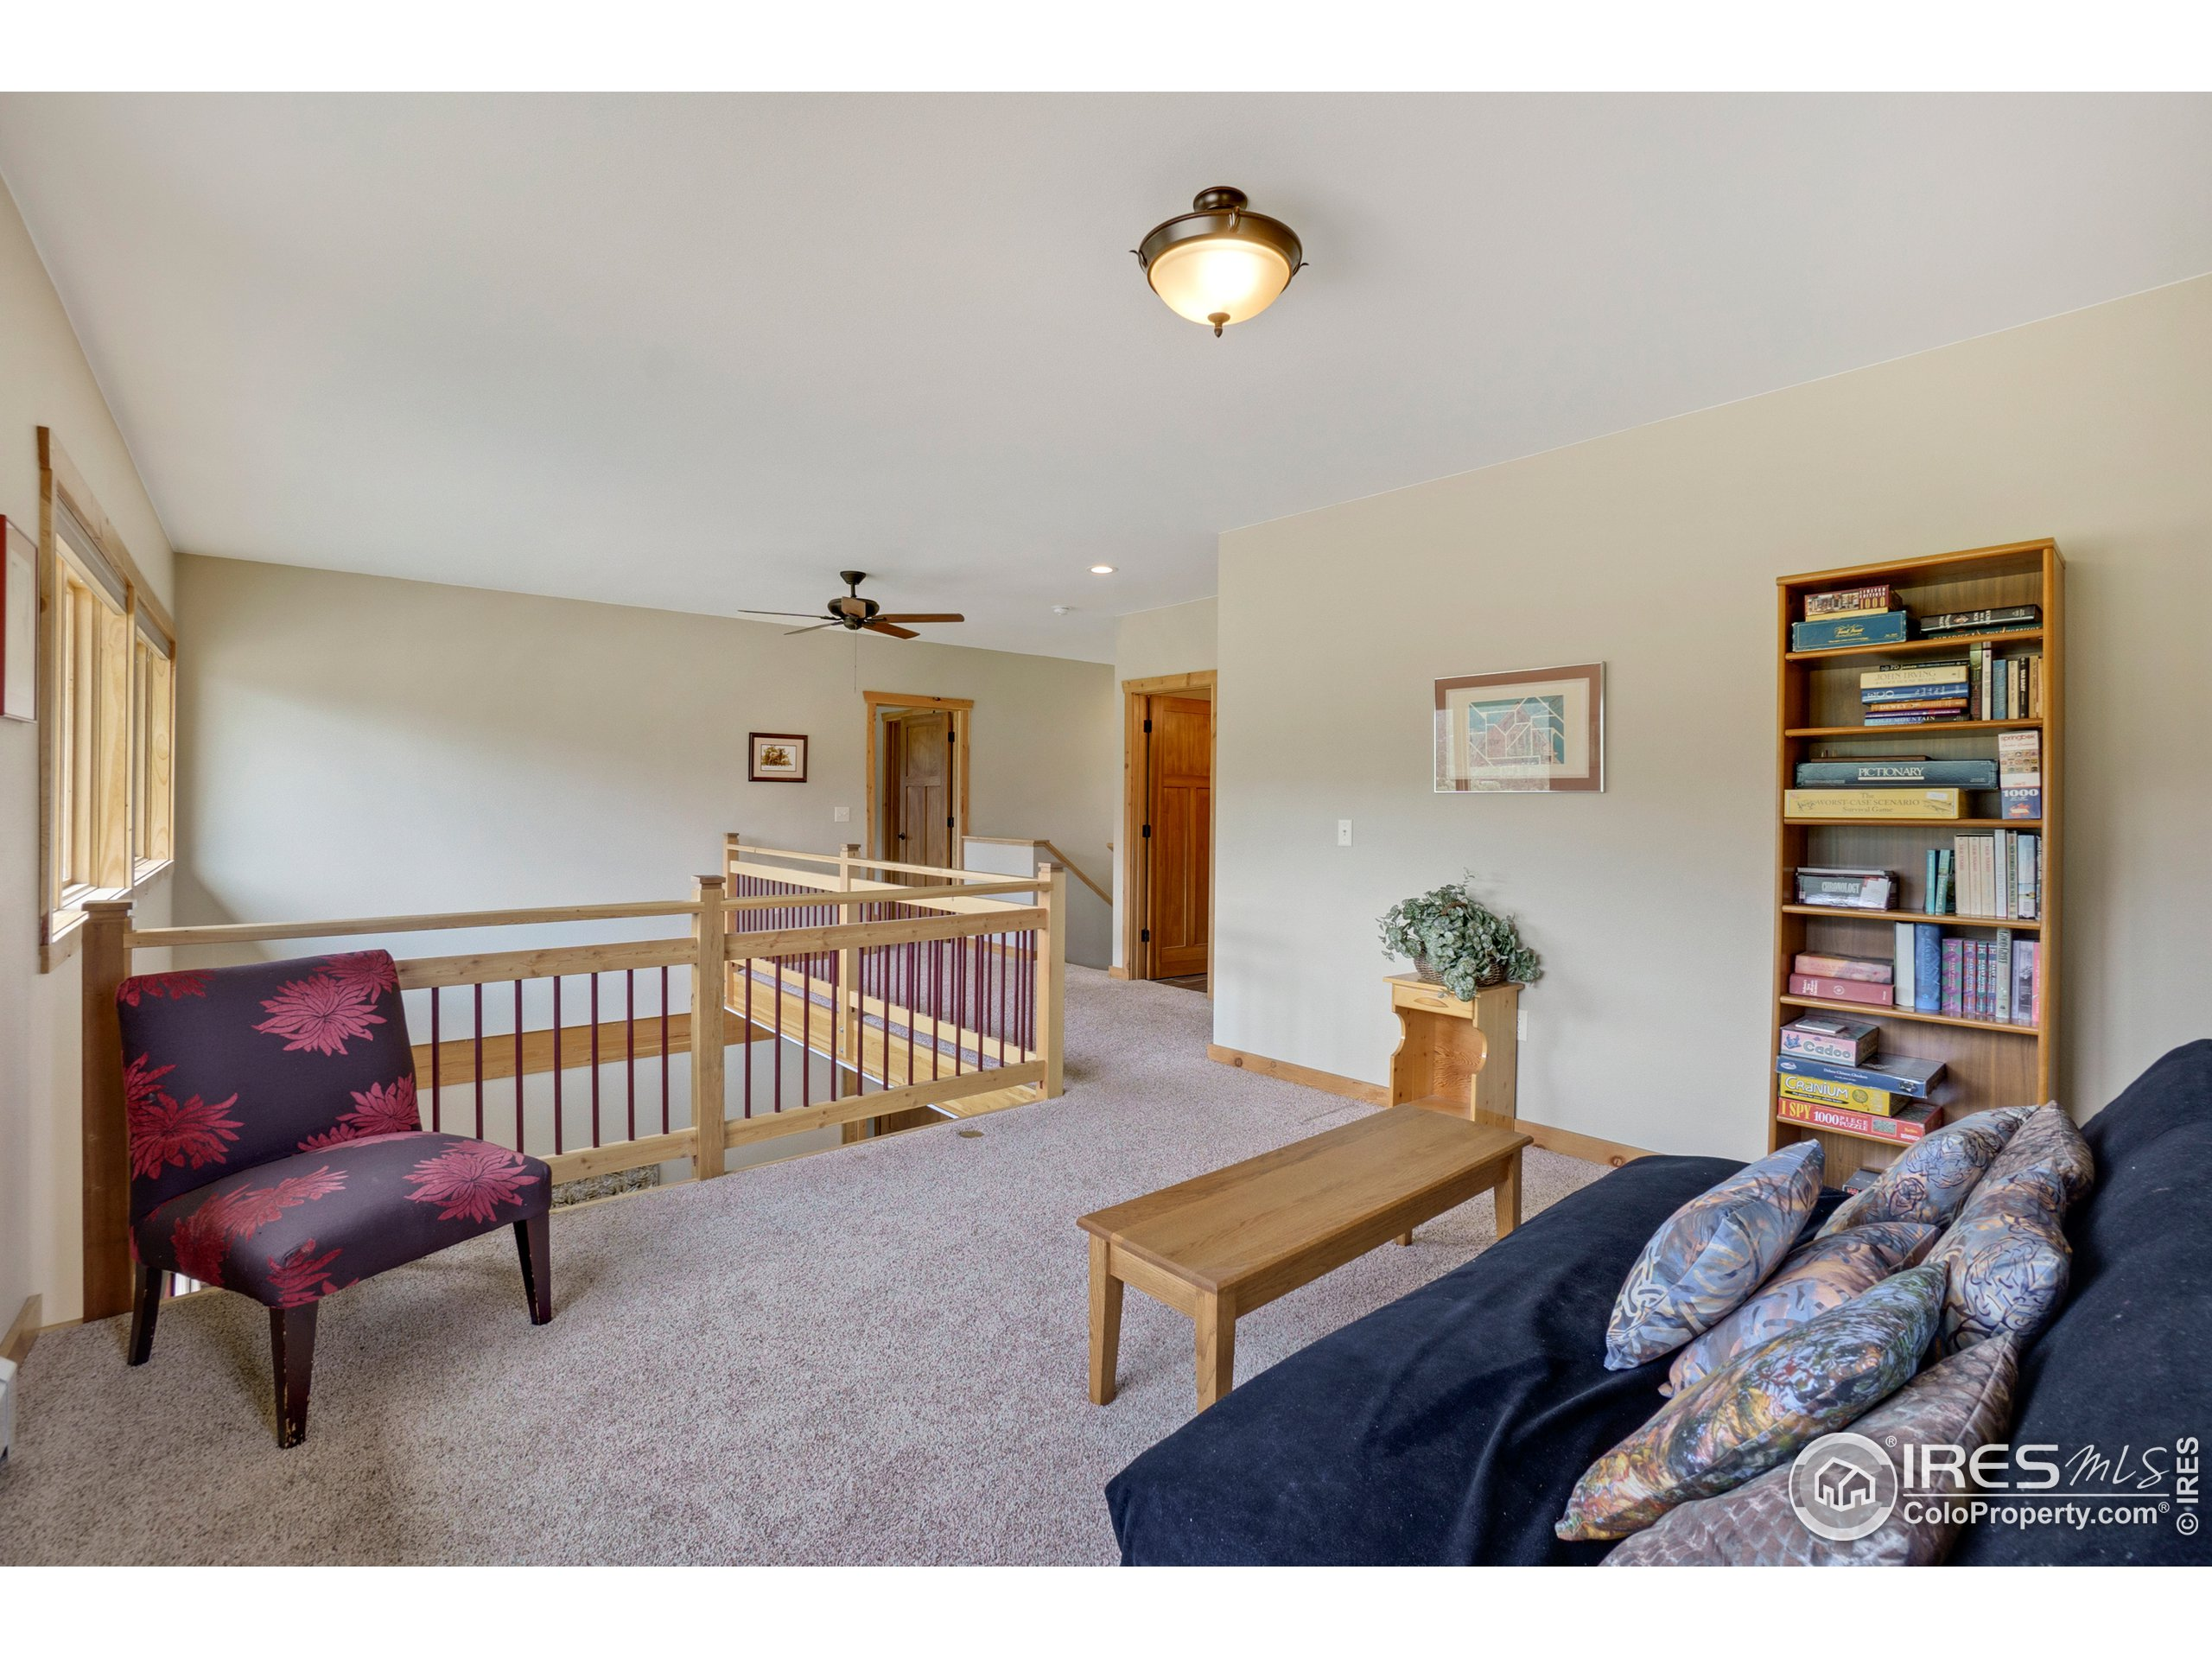 More room for entertaining or relaxing